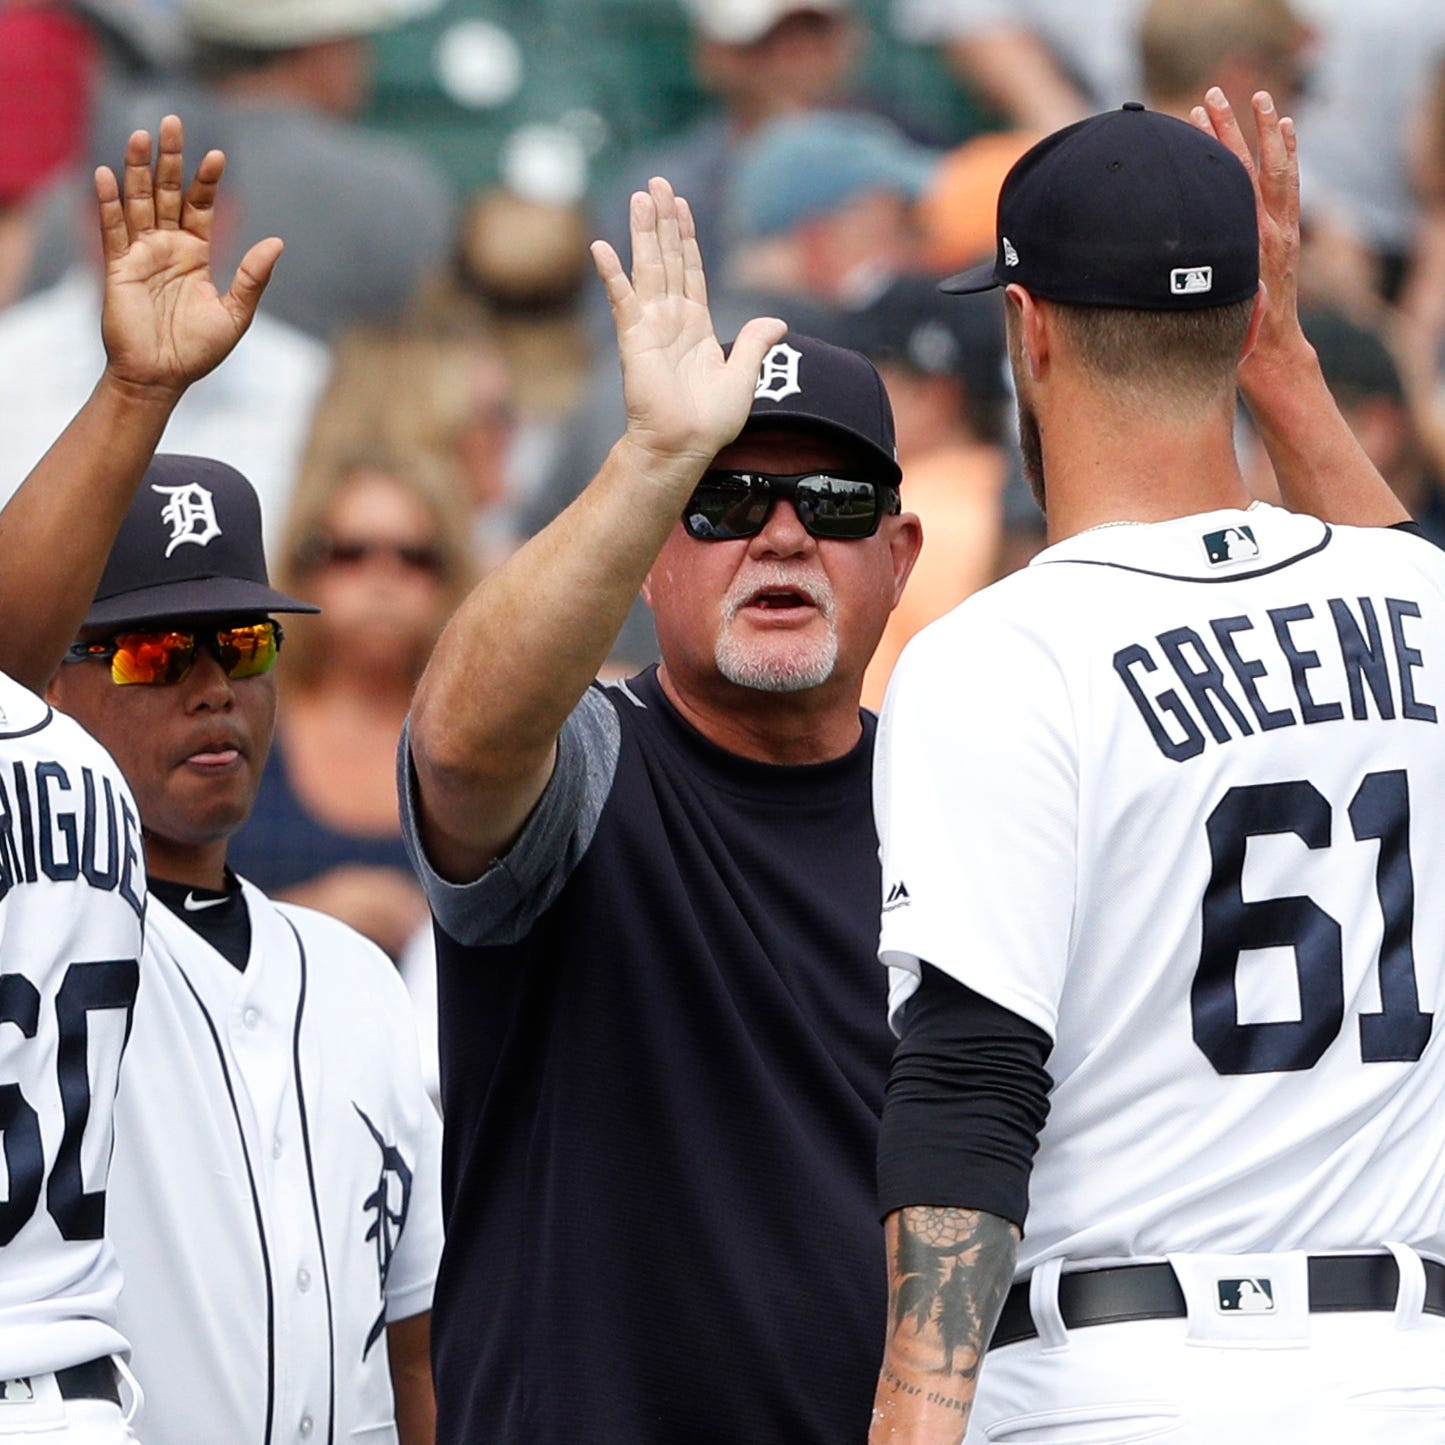 Detroit Tigers did stink in 2018, but here's how they were successful